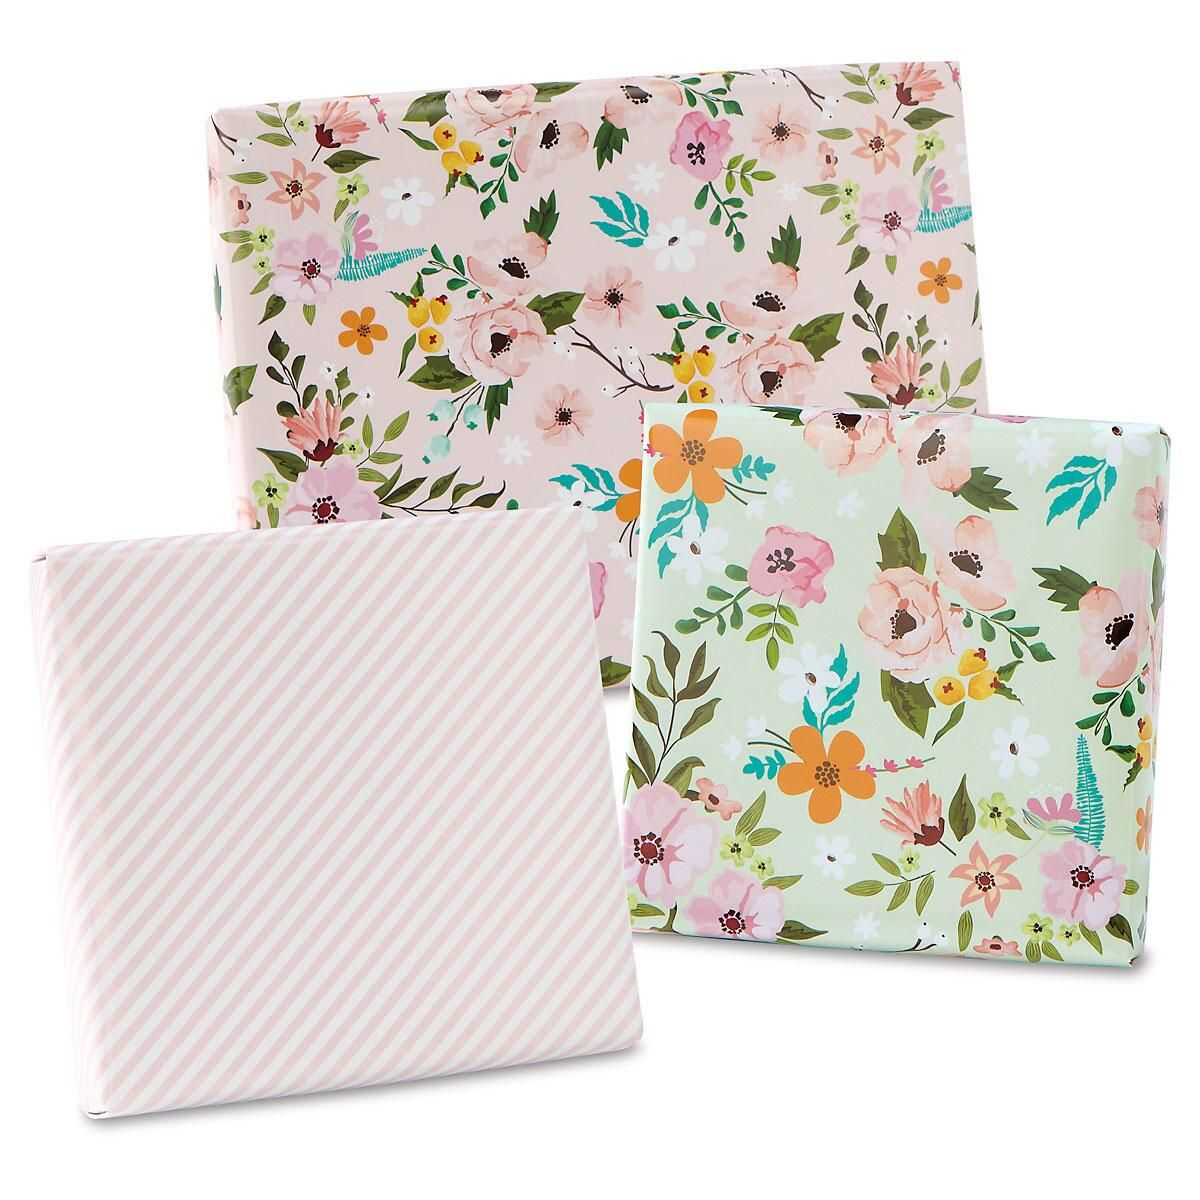 FG3 - 3 Flower Flat Gift Wrap Sheets